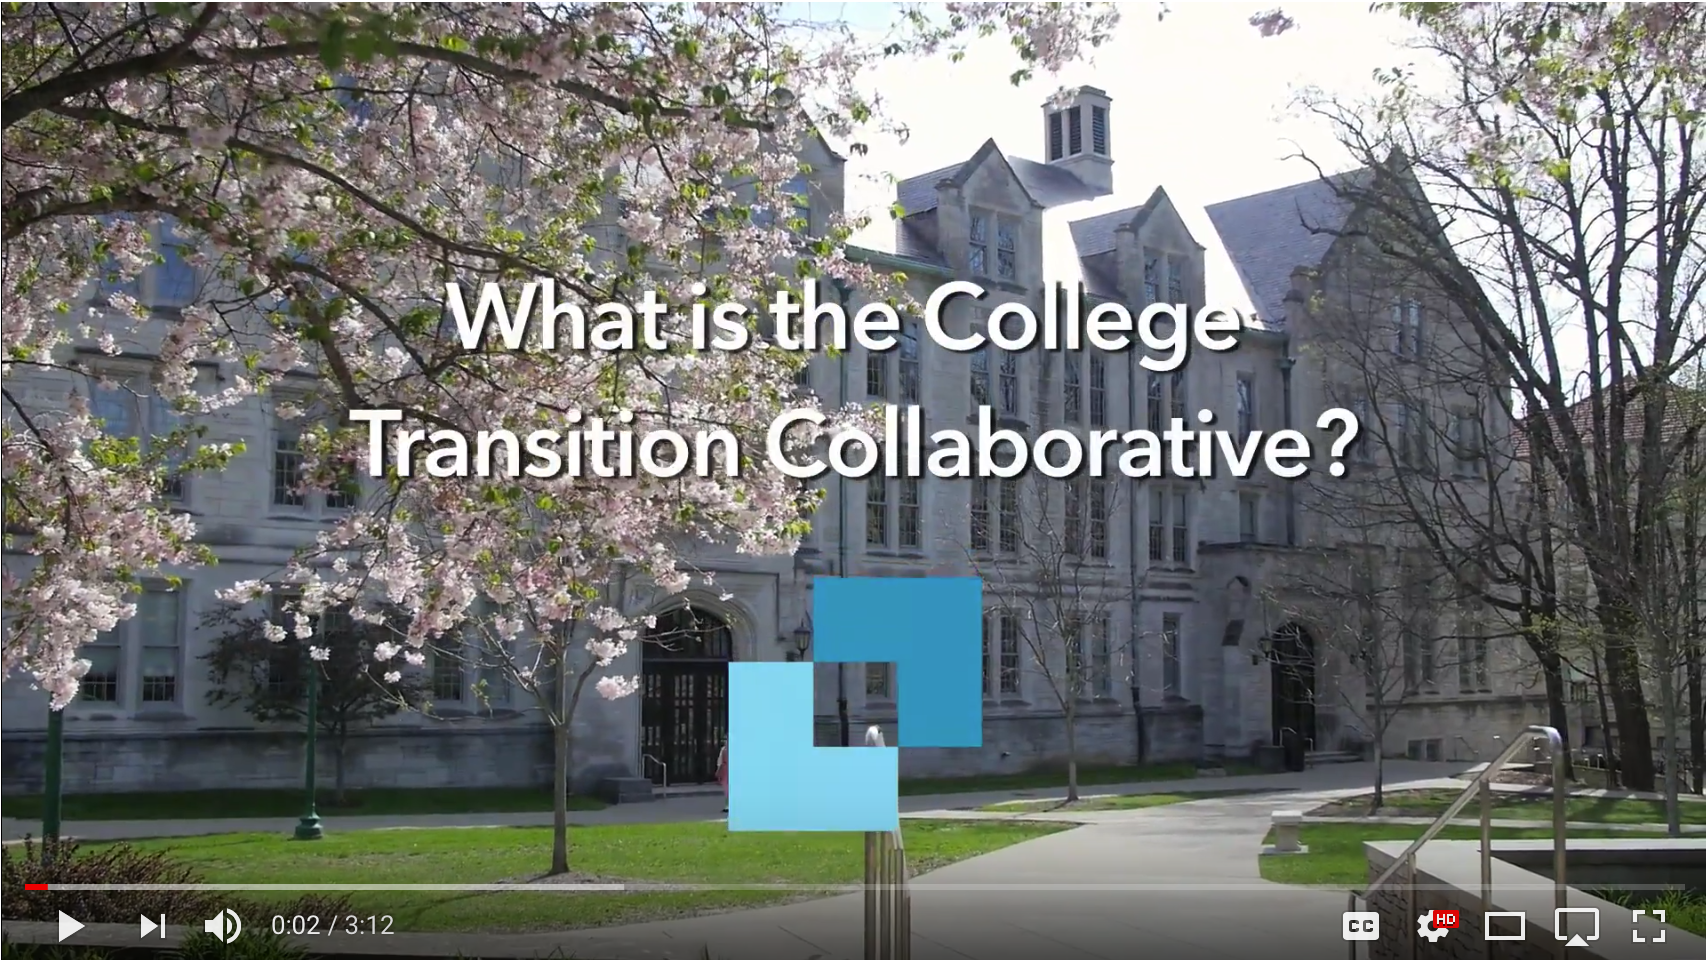 What is the College Transition Collaborative?